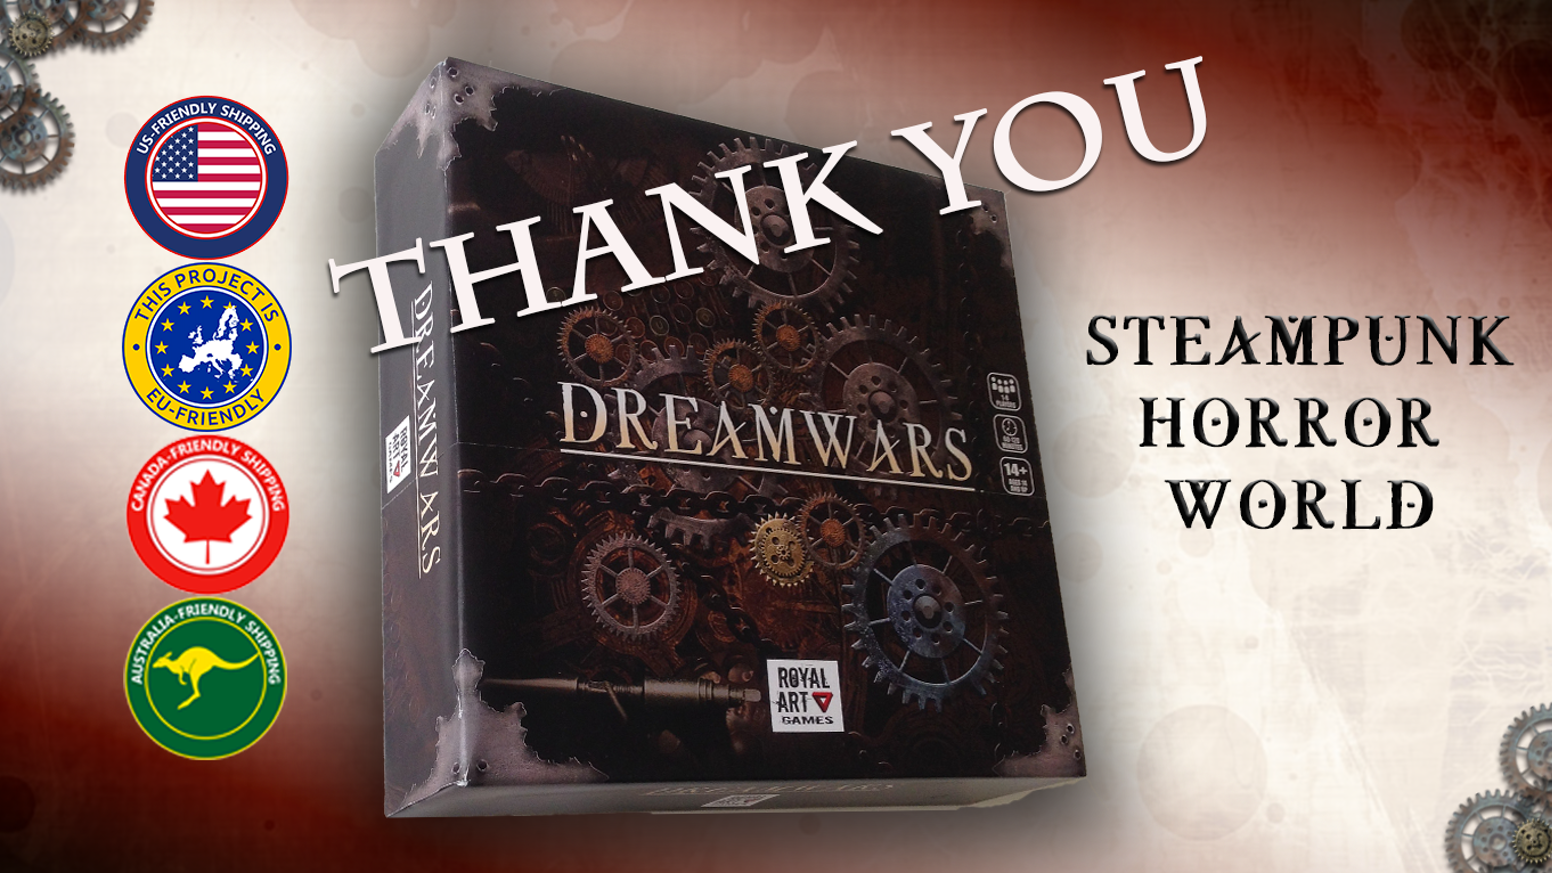 Dreamwars is a 1-to-8 players cooperative board game set in an original steampunk horror world.Now you can still join till October using the link below.